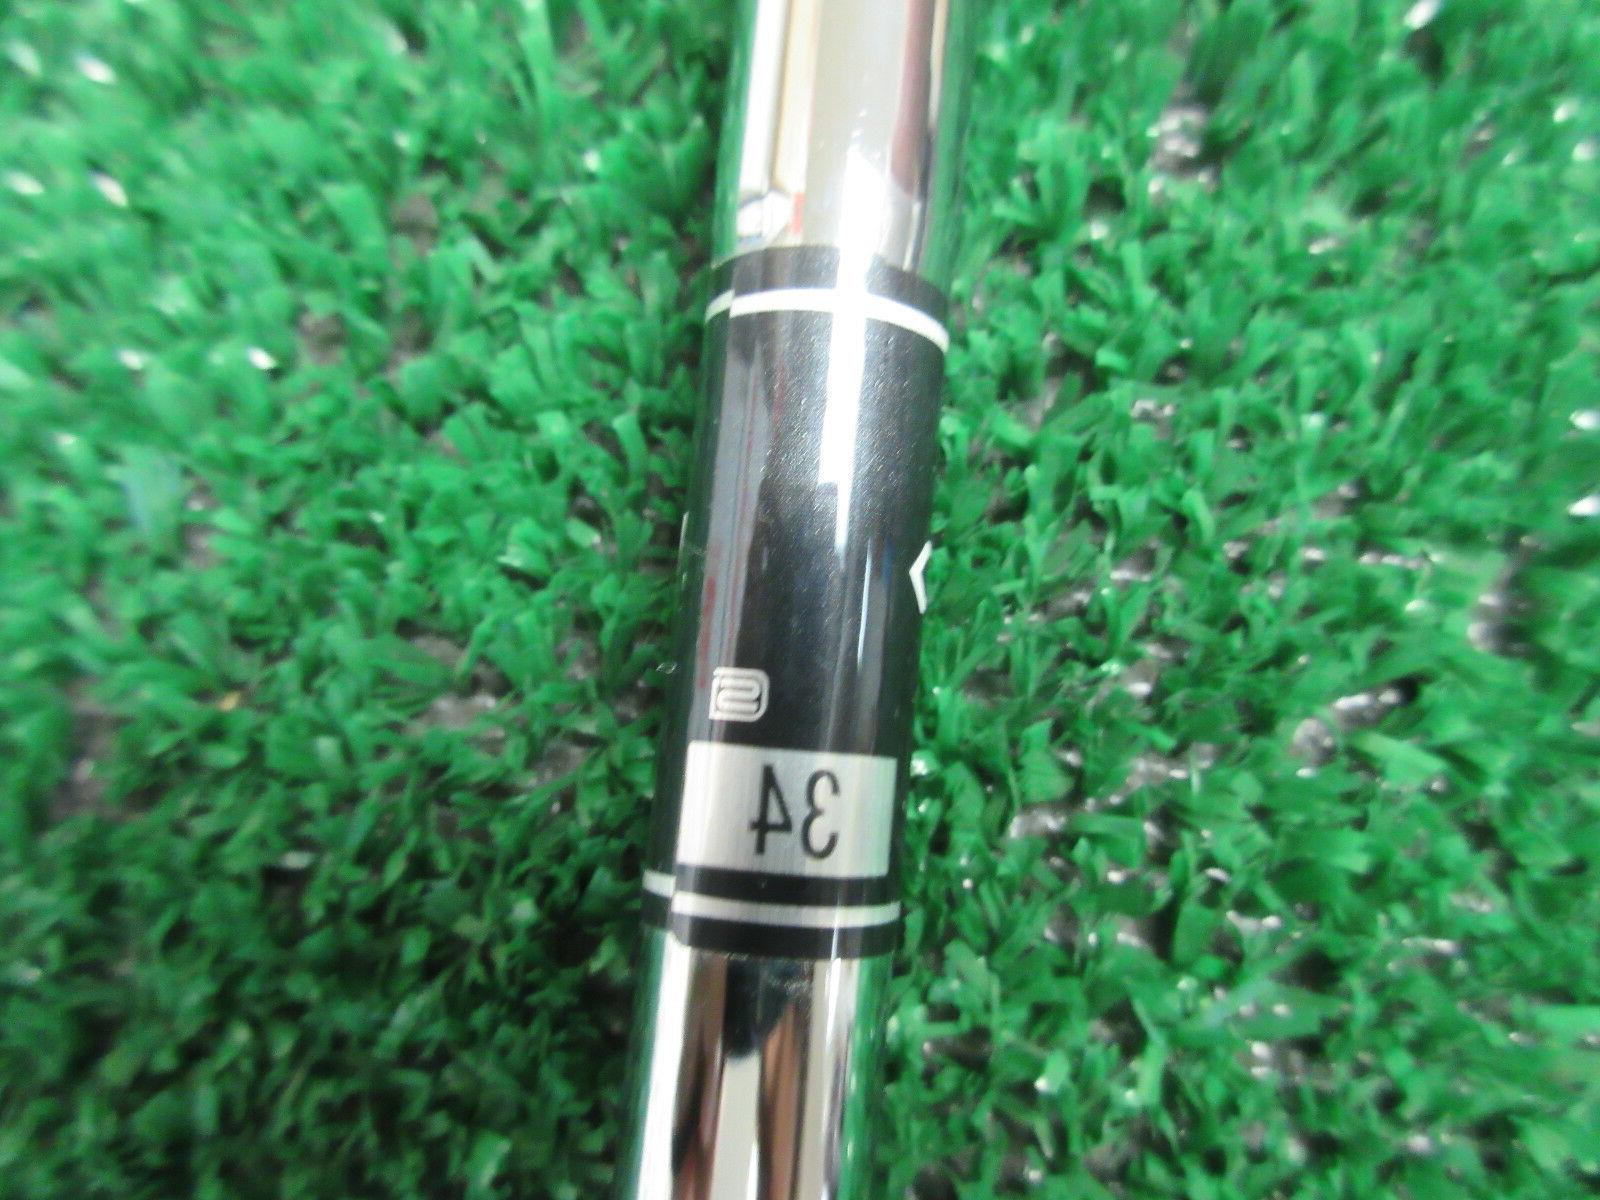 NEW!! TOUR WORLD PUTTER MALLET 34 COVER!